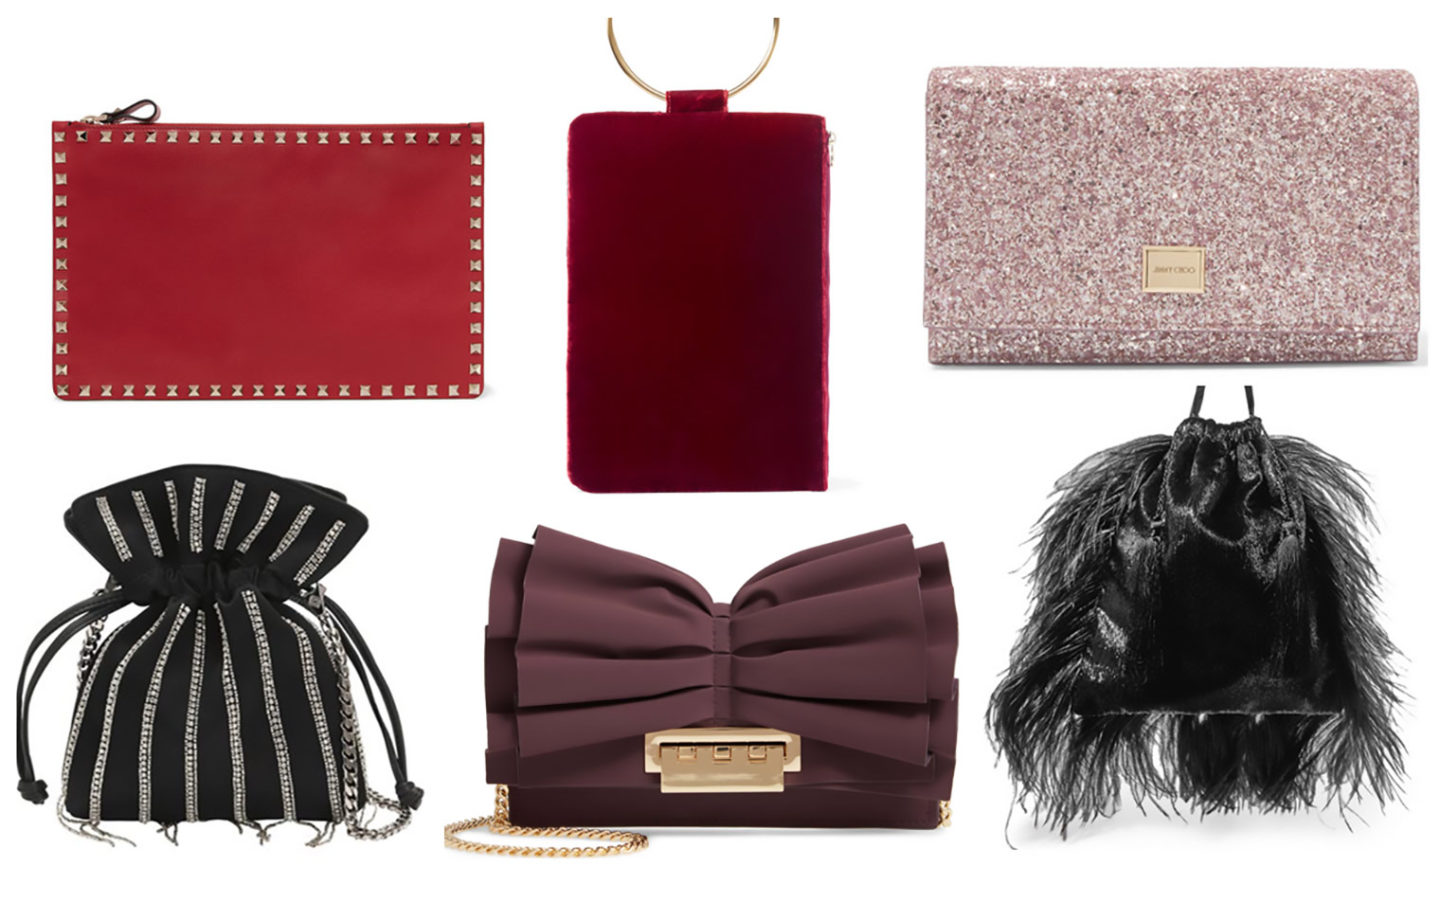 10 best designer party bags that are under £500